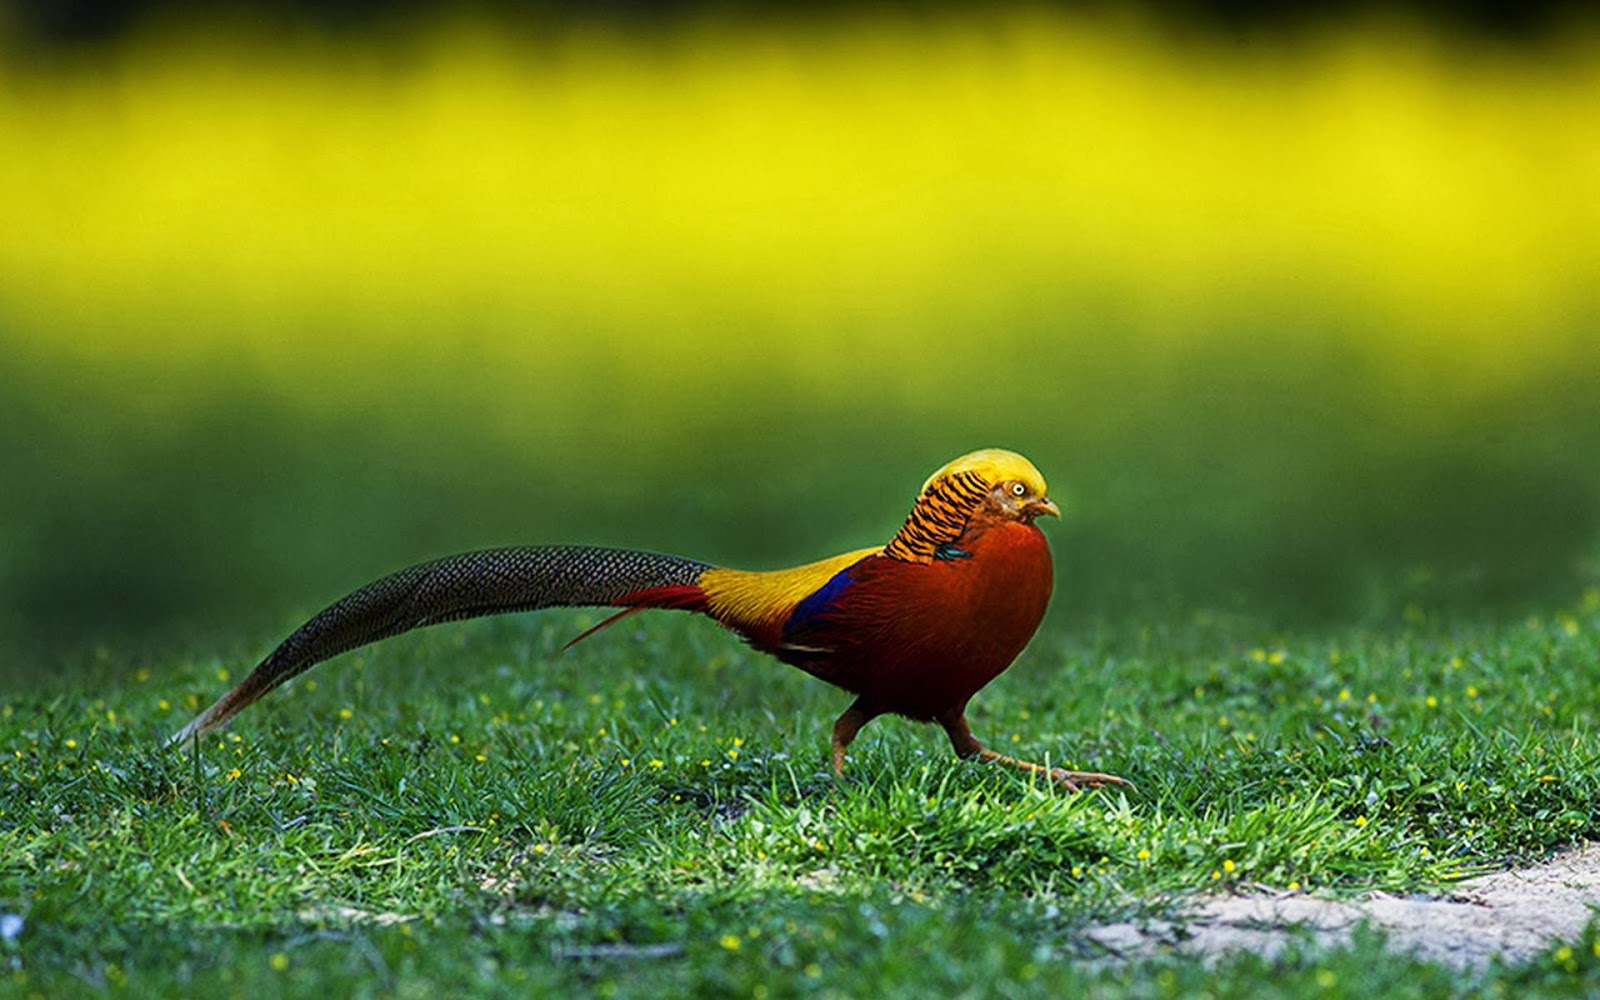 Golden Pheasant Birds HD Wallpapers - Angelic Hugs